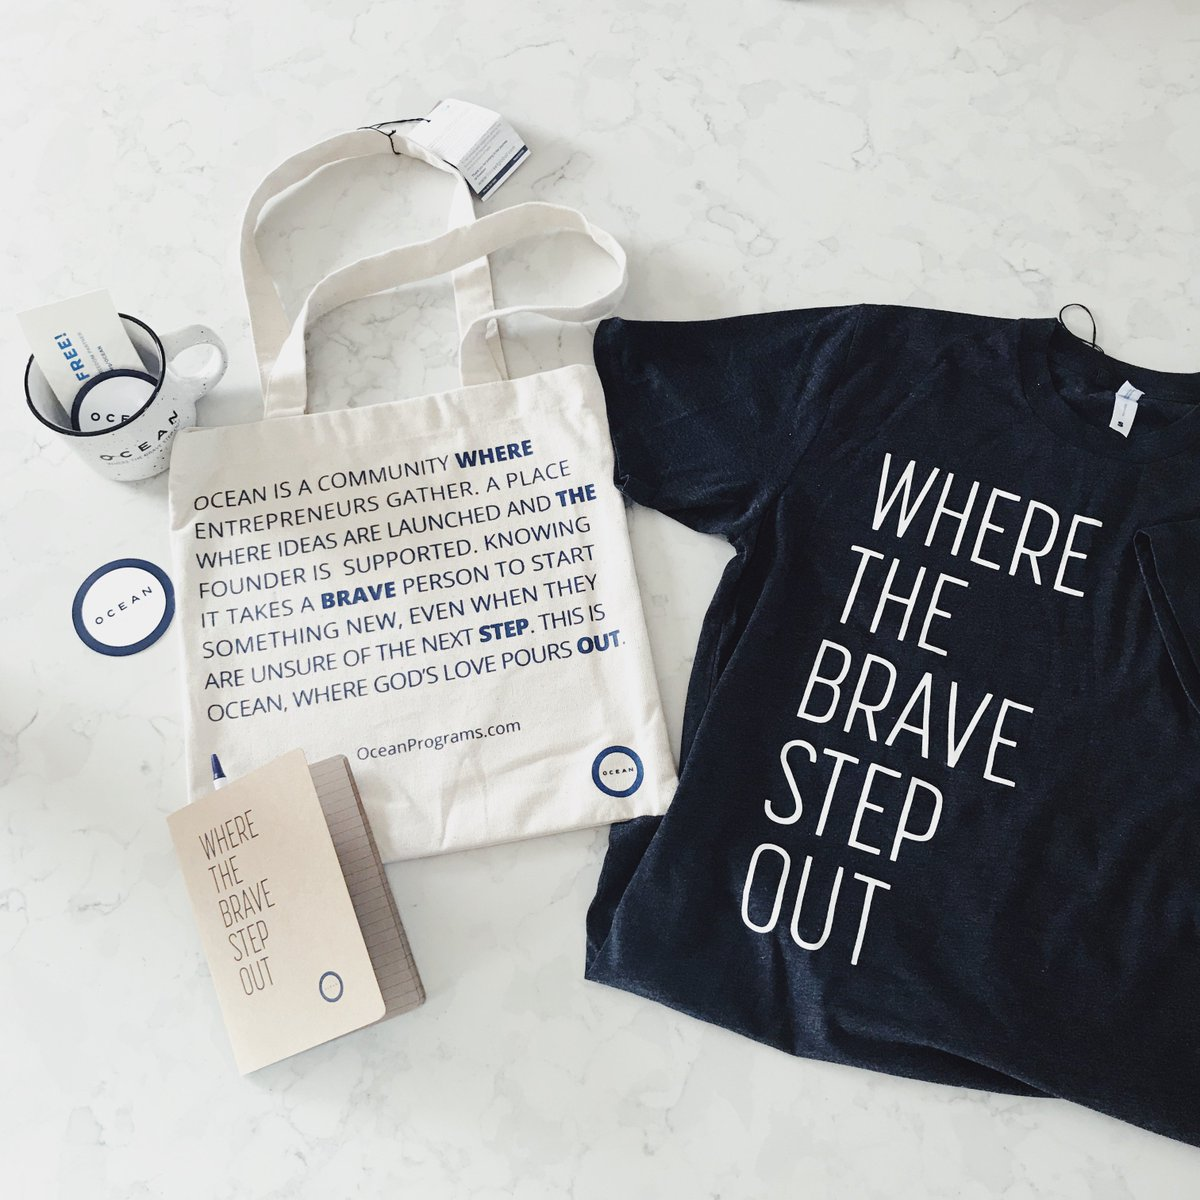 860552a5 Be sure to check out our merch table to grab your own Brave shirt and  #MakeDifference with @freesetUSA. #fairtrade#freesetusa pic.twitter.com/zXr6kV5NTJ